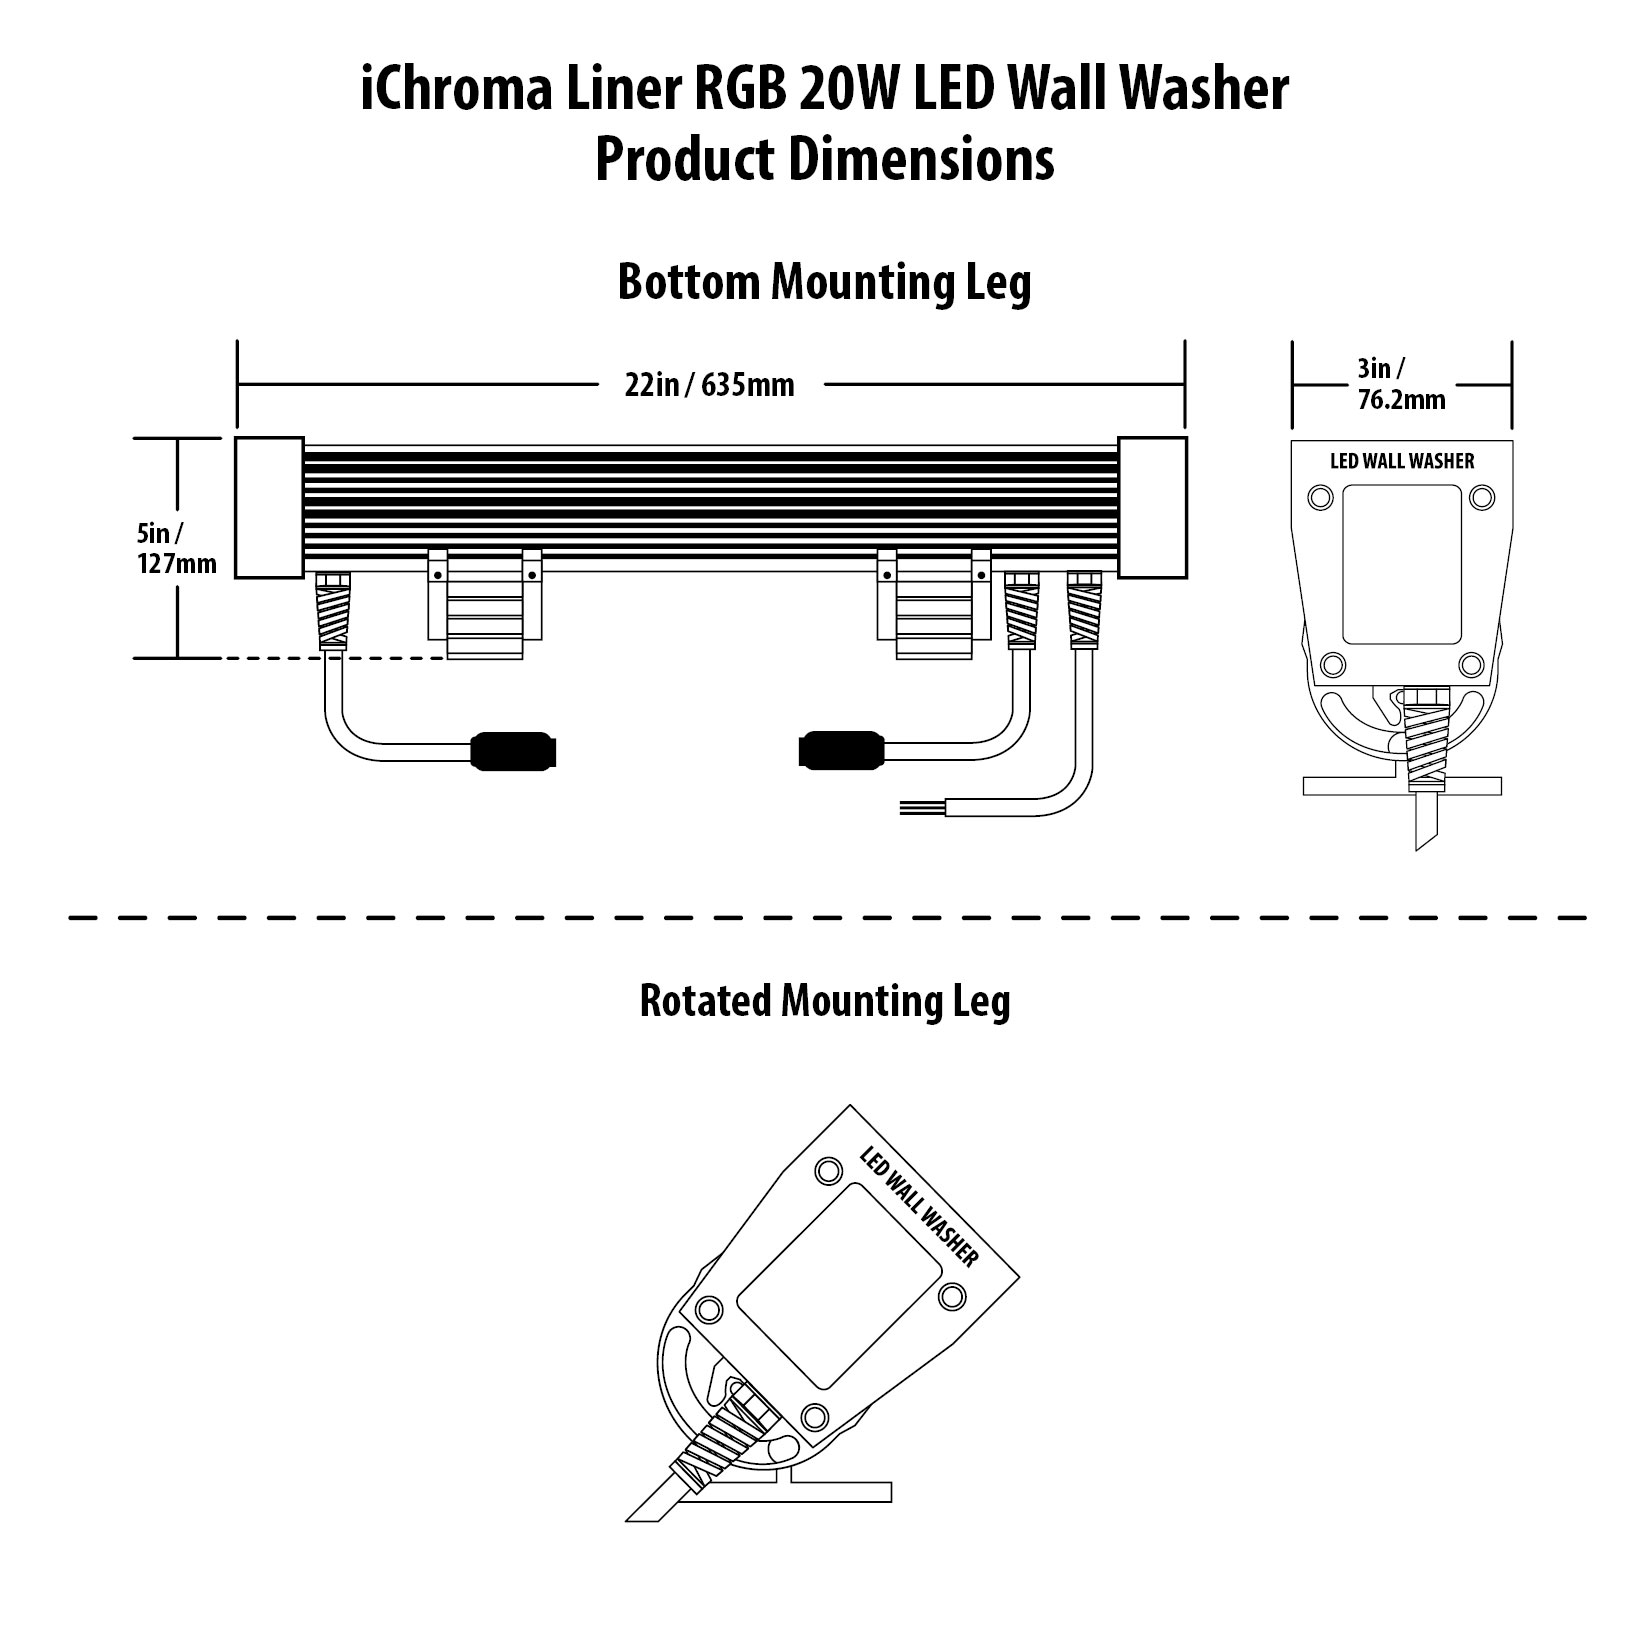 iChroma Liner RGB LED Wall Washer